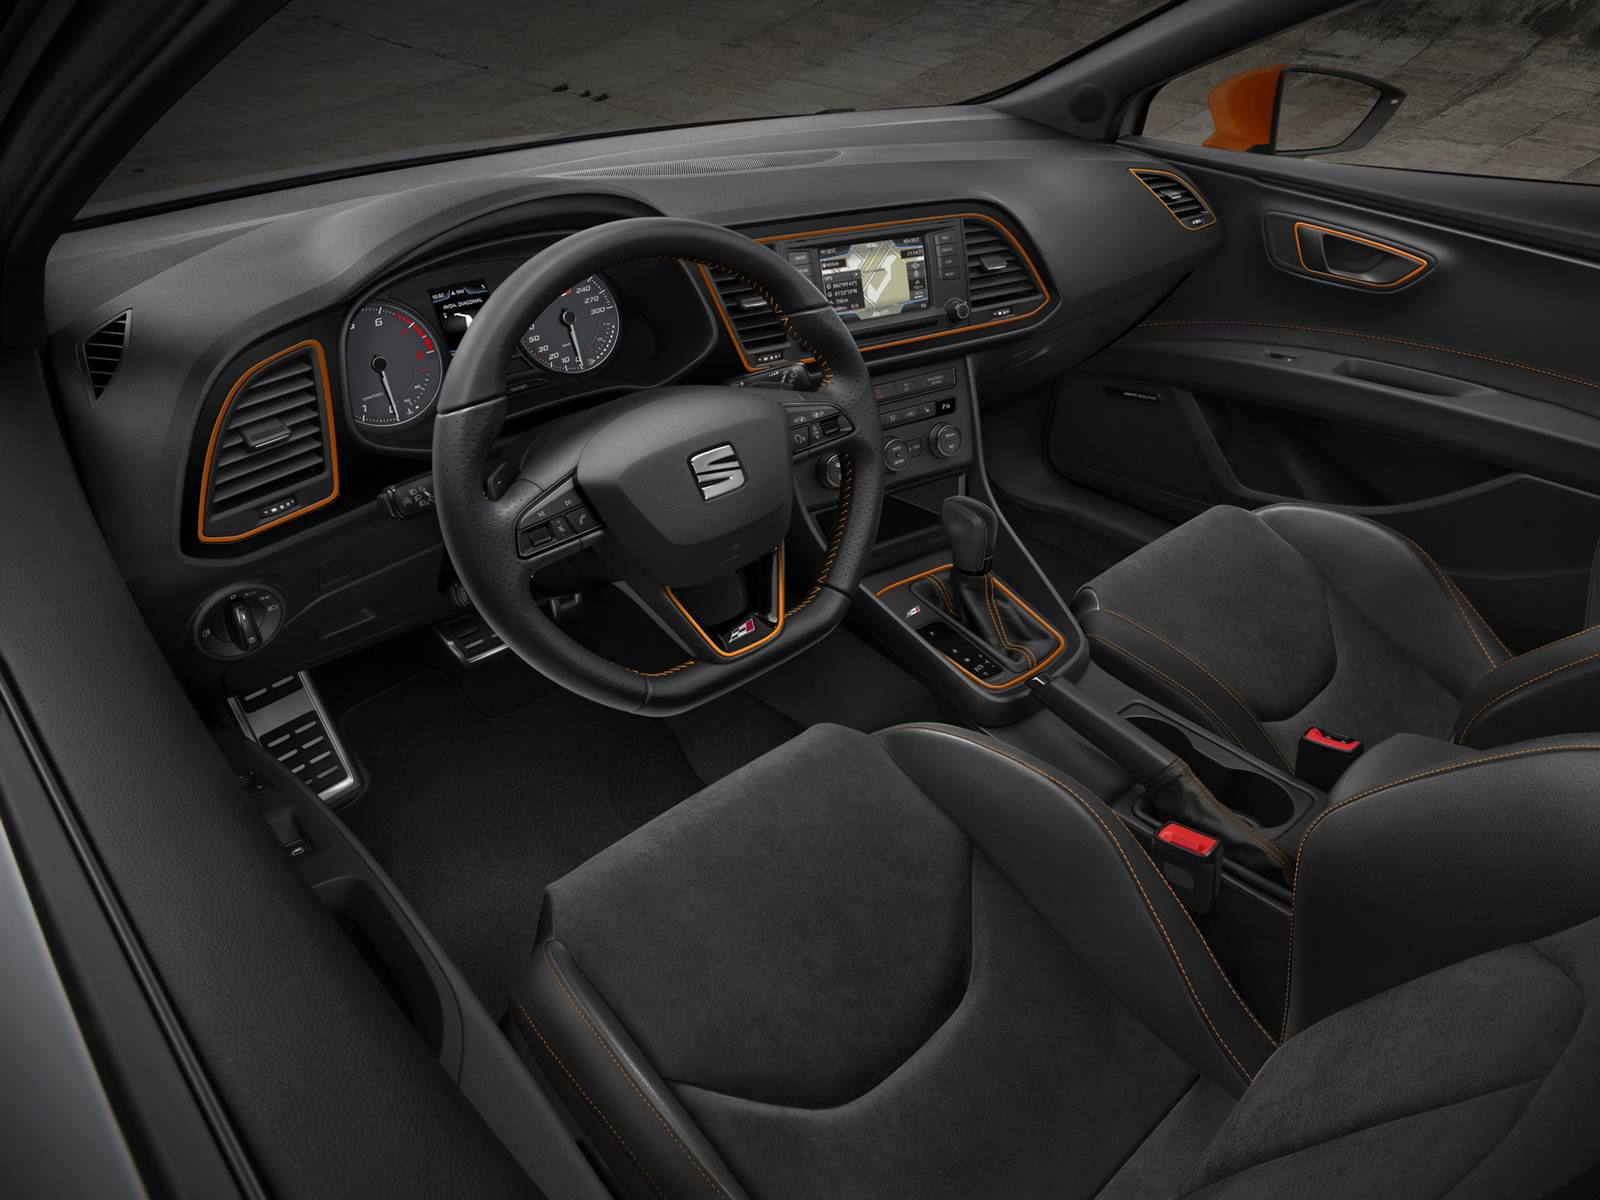 Ranking dos 7 hatch s esportivos mais potentes de 2015 car blog br - Seat leon interior ...